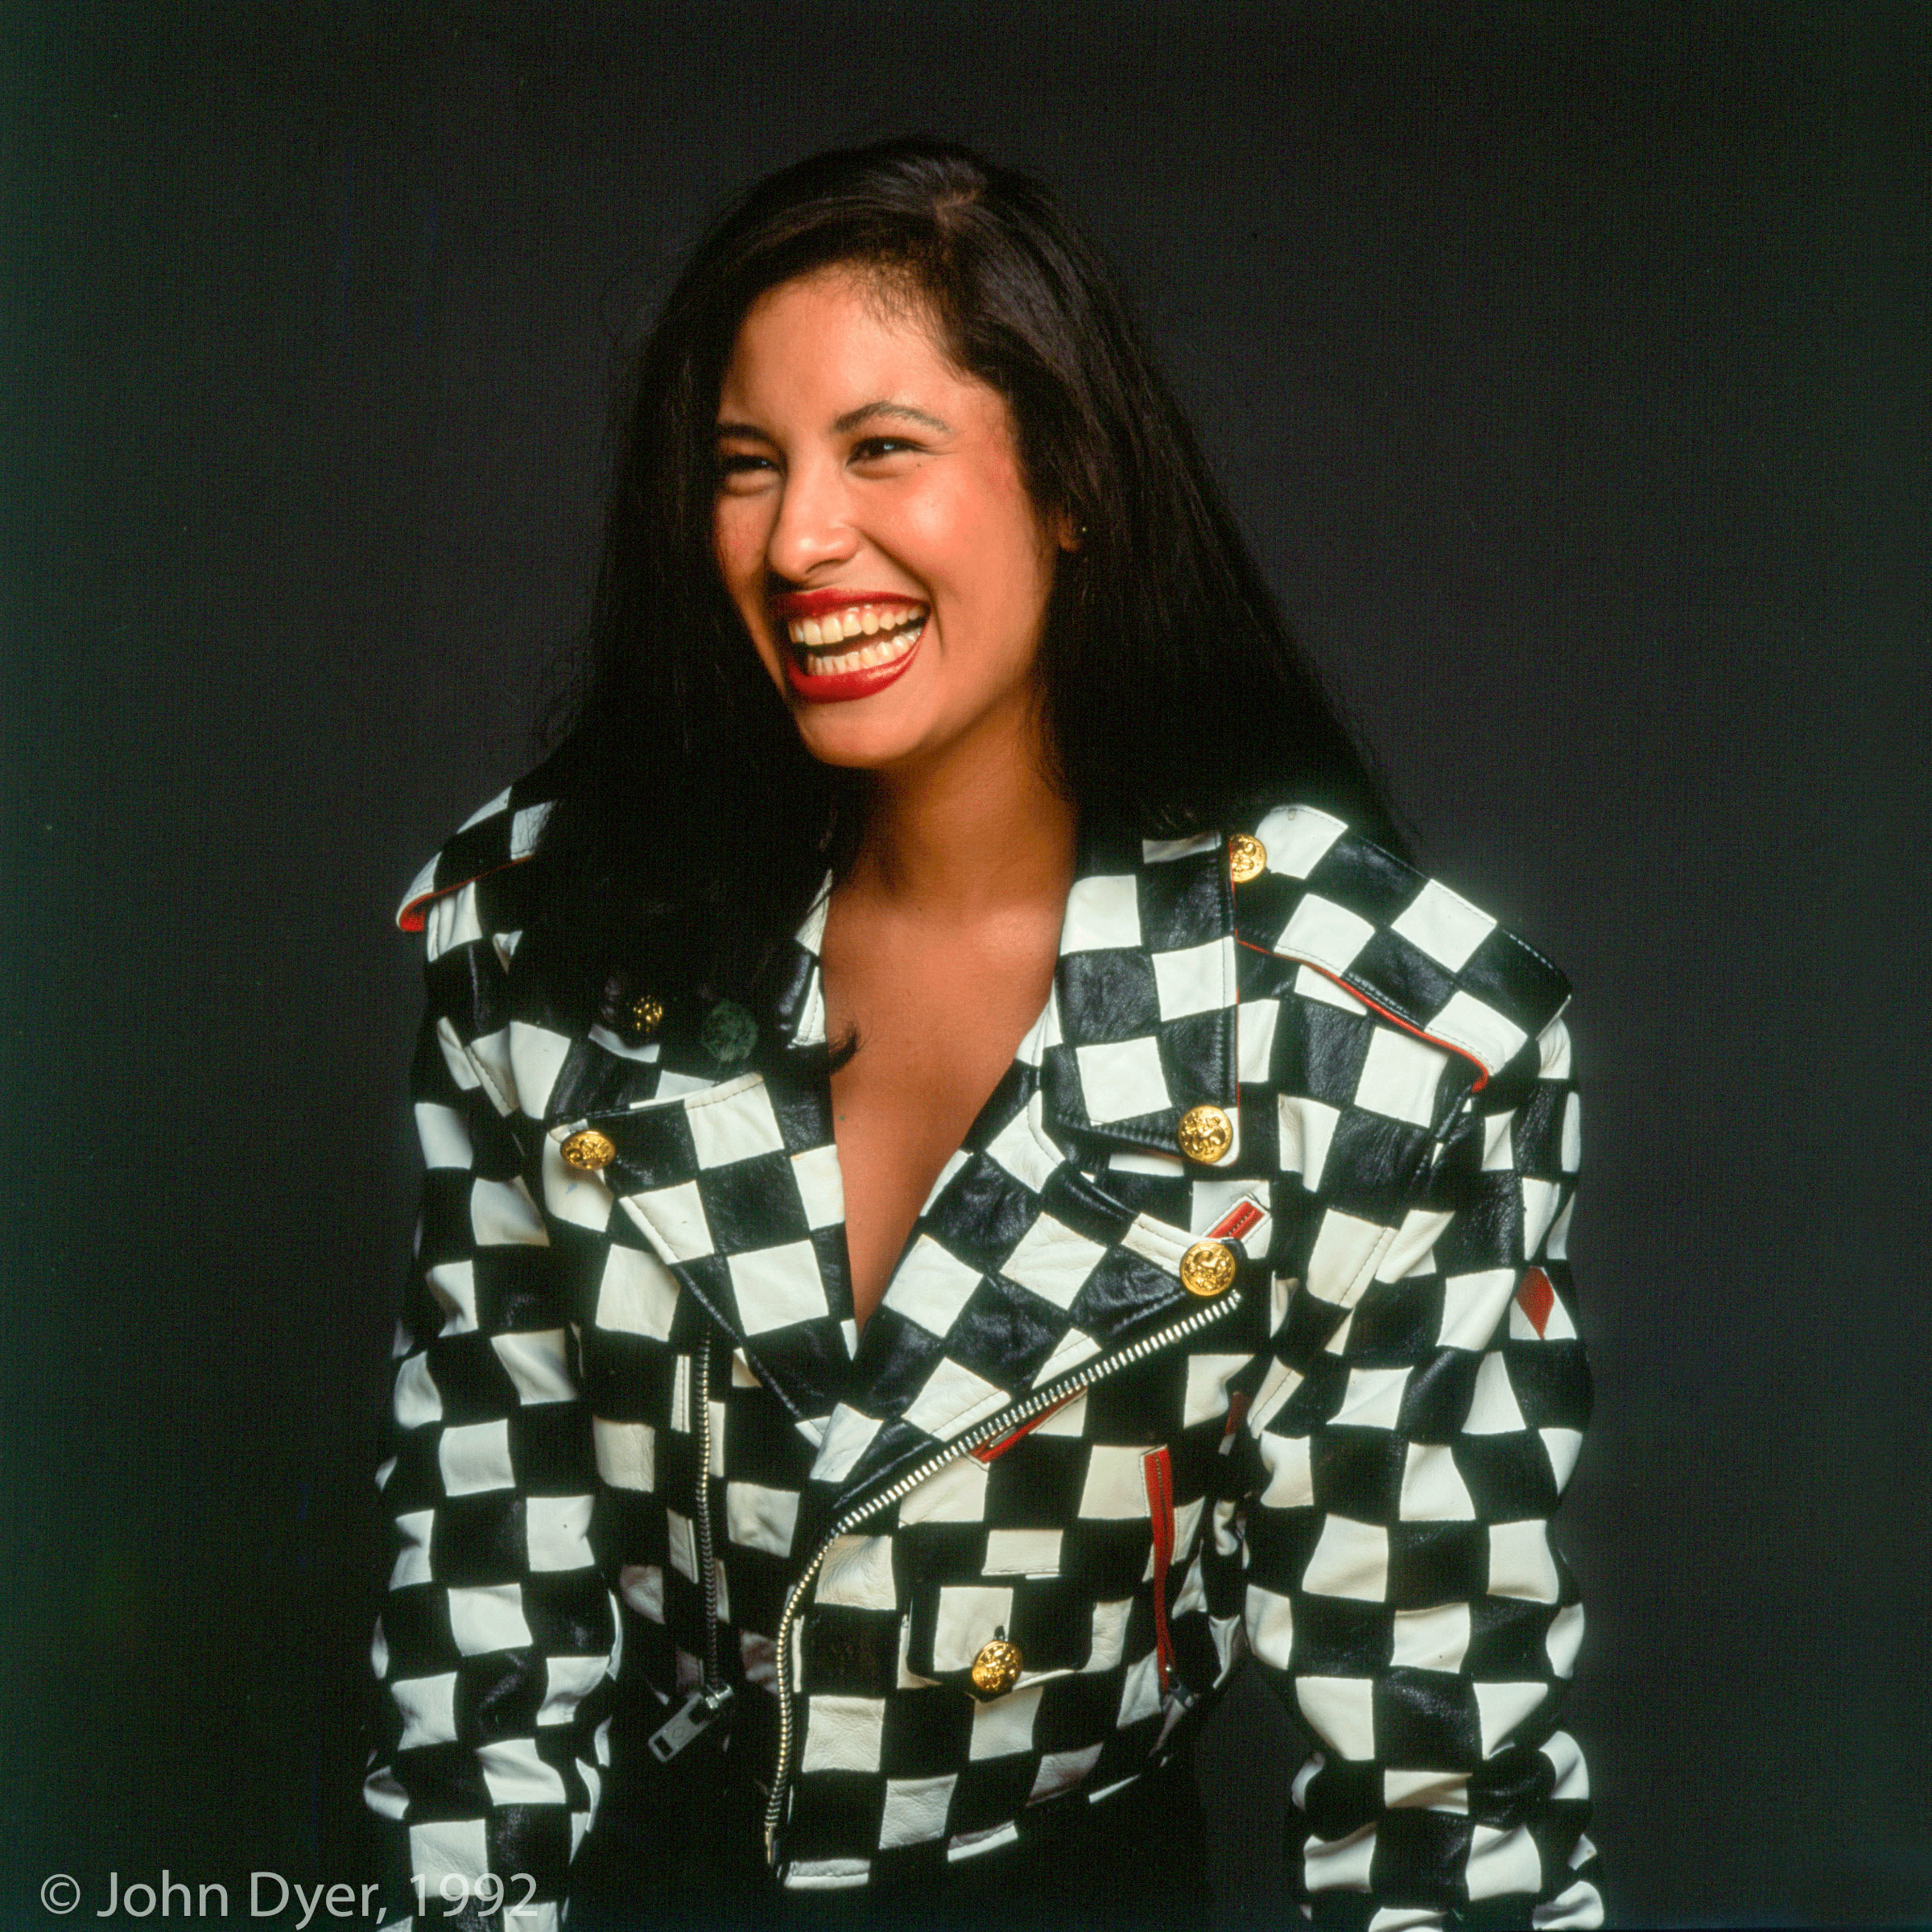 selena quintanilla laughing while having her photograph taken wearing a checked jacket